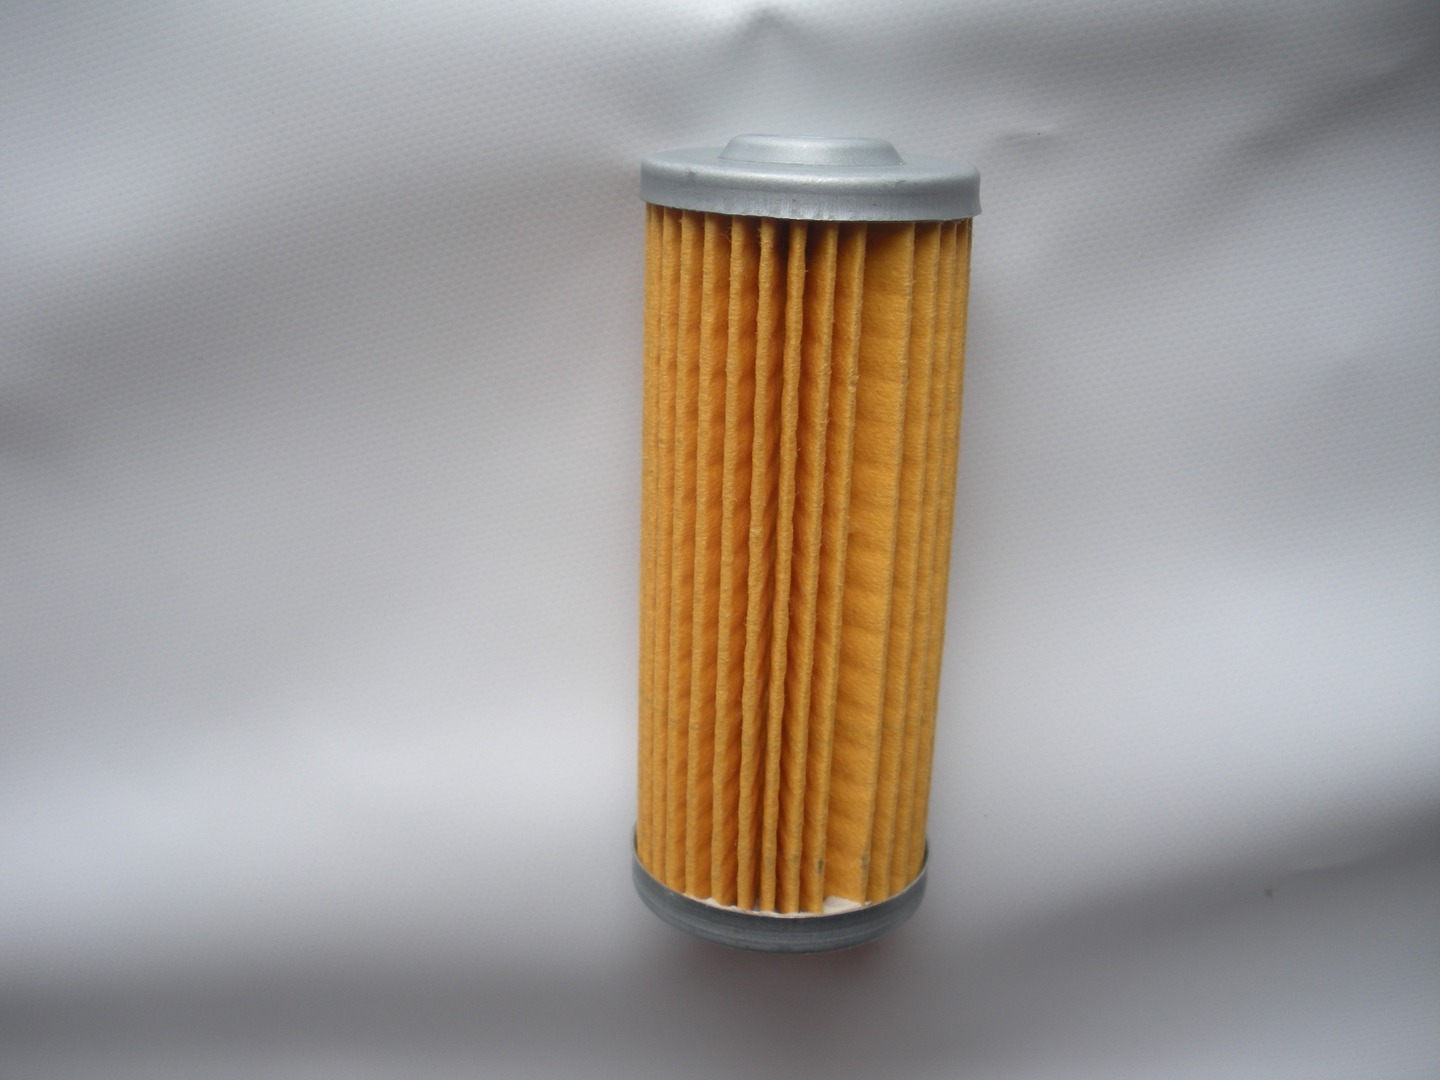 Branson Parts New Used Tractor Fuel Filters We Now Carry A Large Selection Of